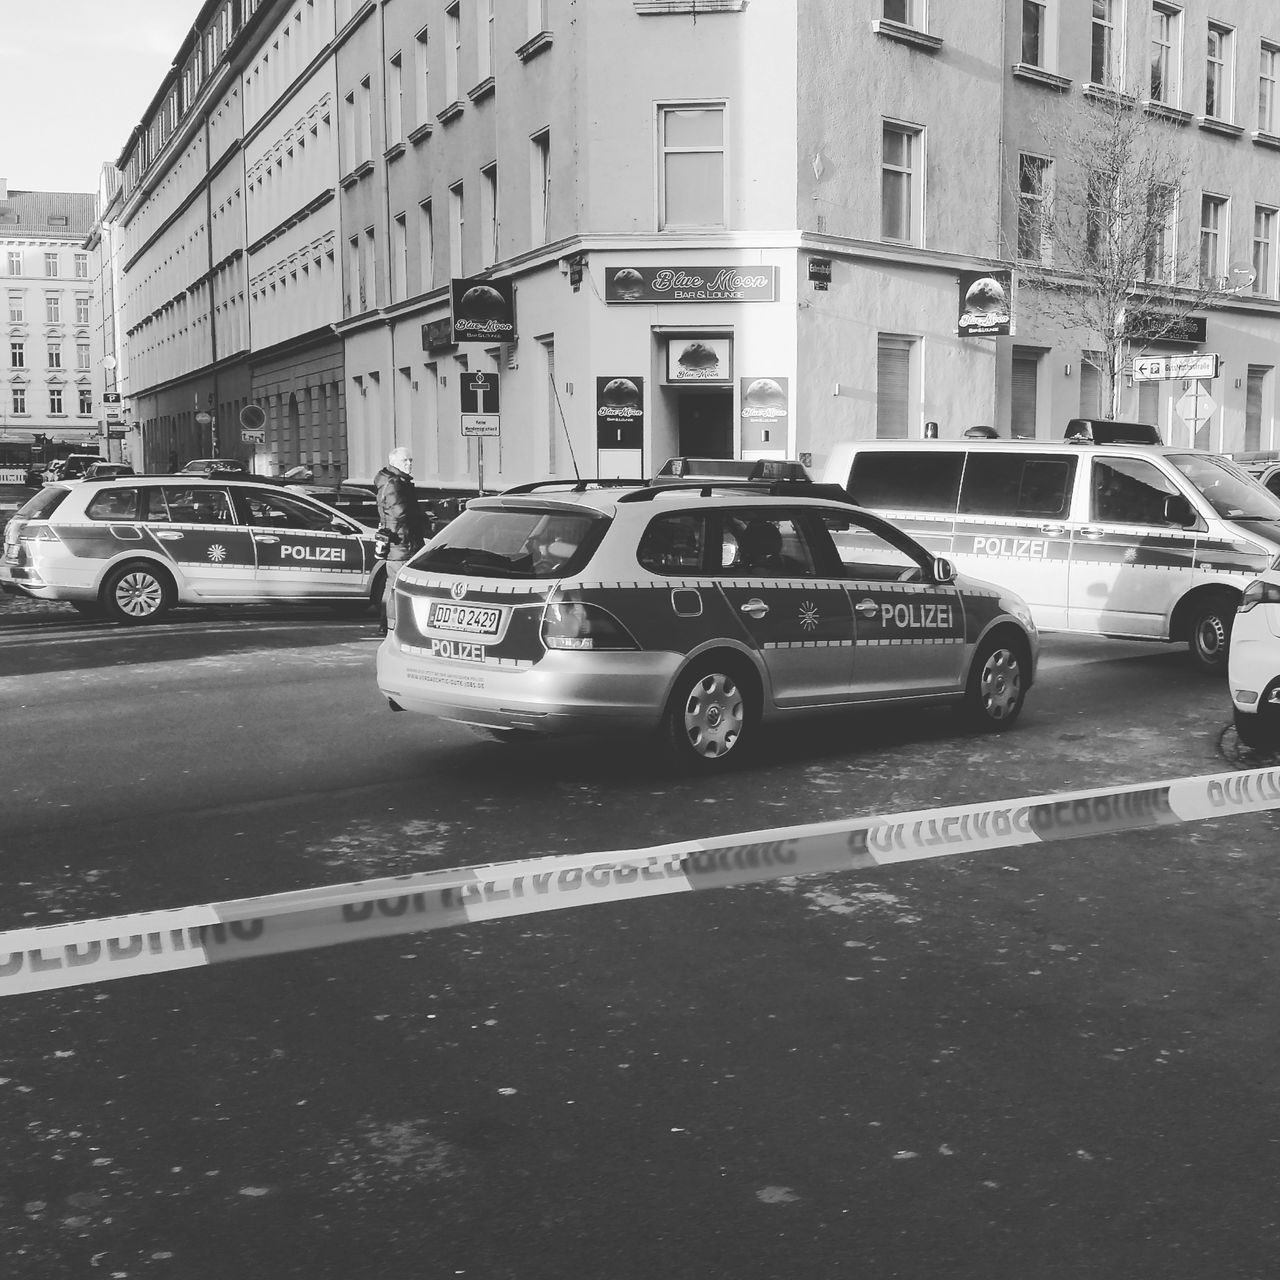 Crime Crimescene Police Policeman Police Car Policecar Police At Work Policeline Polizei Polizeieinsatz Blackandwhite Black And White Black & White Blackandwhite Photography Black&white Leipzig Lindenau Leipzigram Germany